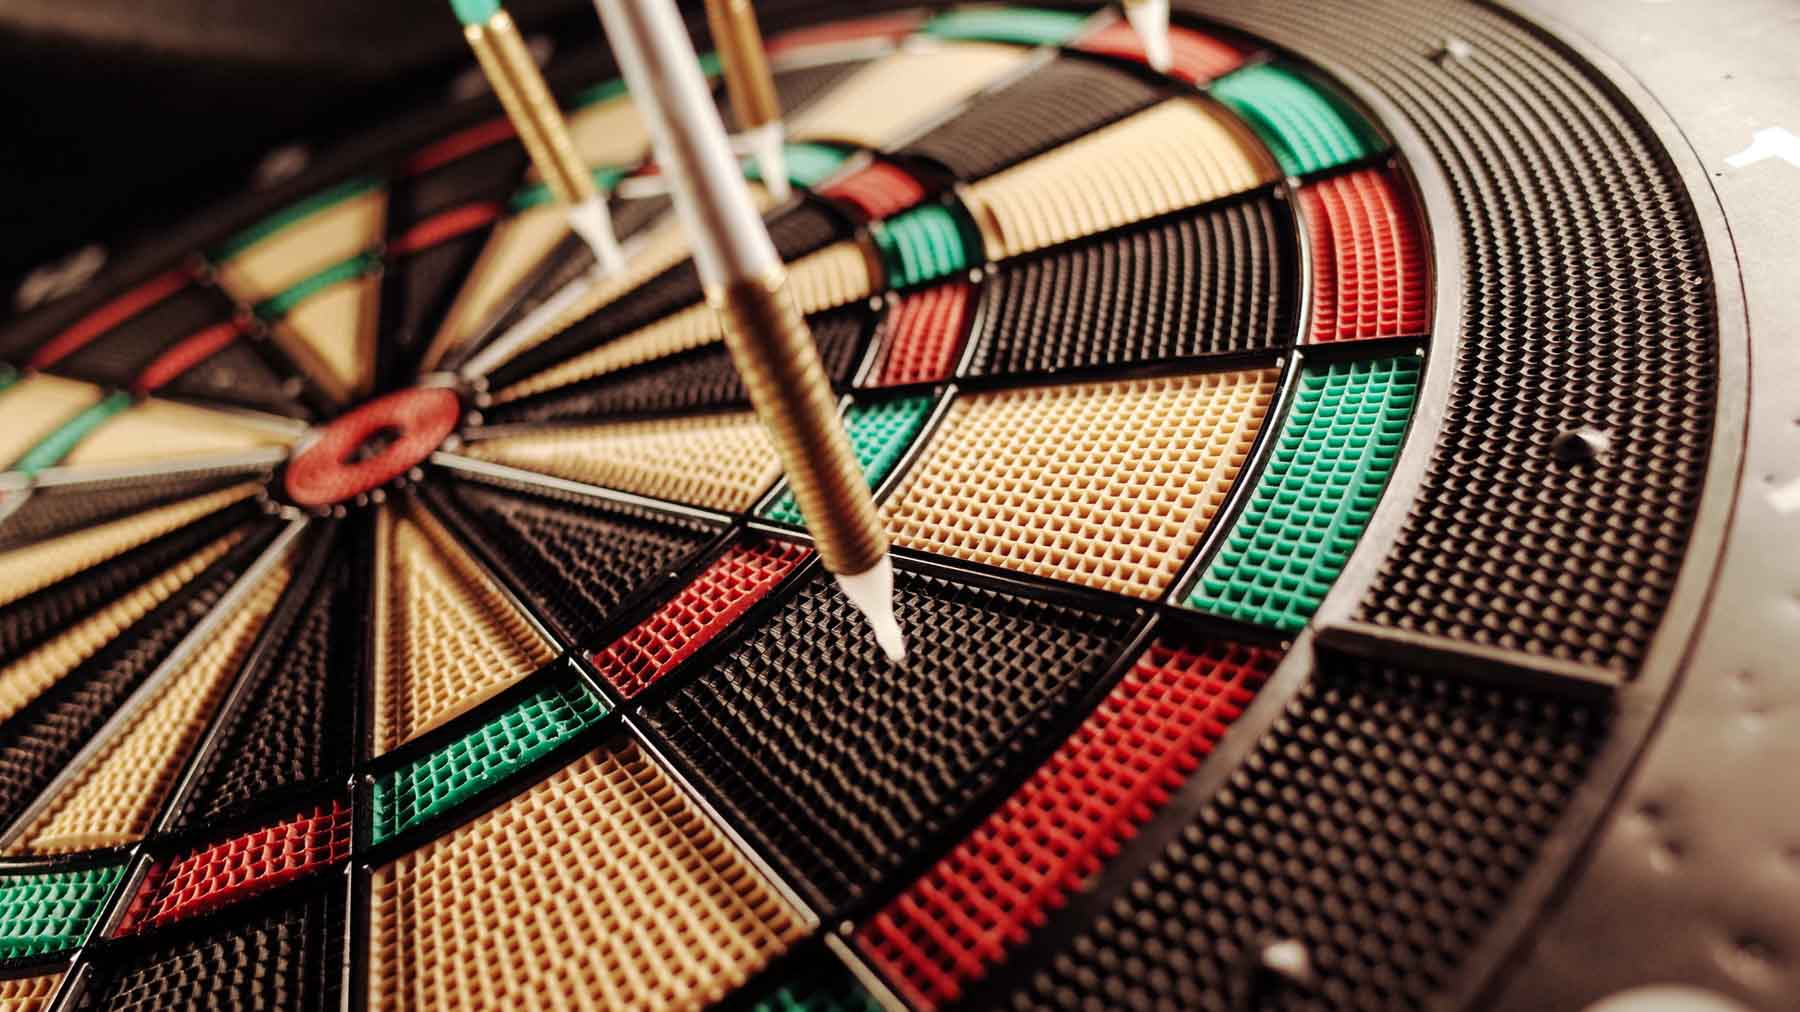 darts targeting dartboard